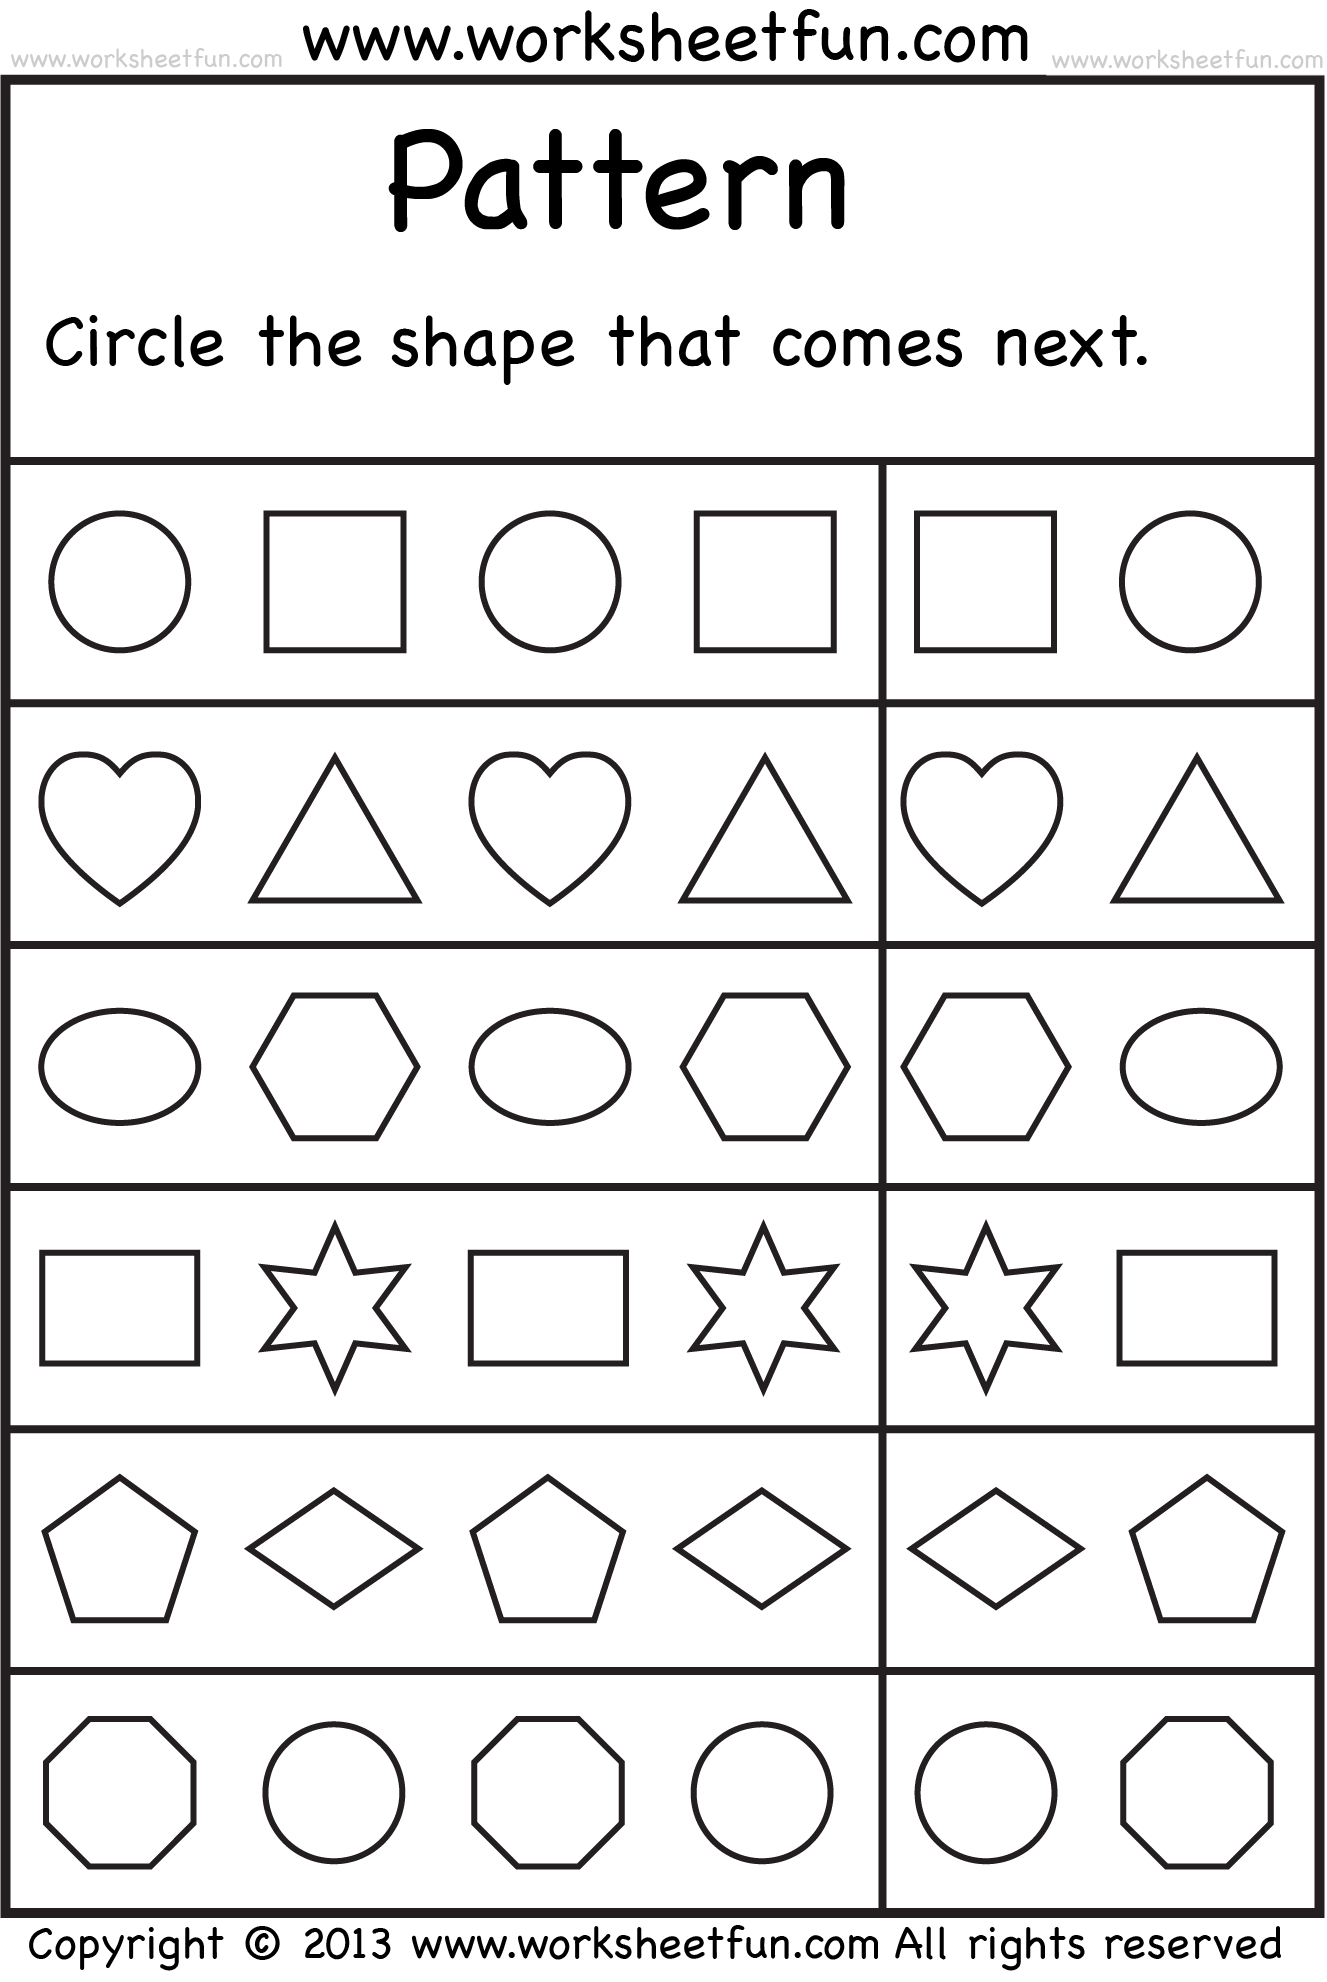 Proatmealus  Surprising  Images About School Worksheets On Pinterest  Number Words  With Interesting  Images About School Worksheets On Pinterest  Number Words Alphabet Worksheets And Free Printable Kindergarten Worksheets With Alluring Free Math Worksheets For Kindergarten Counting Also Constructing Bar Graphs Worksheets In Addition Math For Grade  Worksheets And Theme Worksheets For Th Grade As Well As Childrens Dot To Dot Worksheets Additionally Plants Parts Worksheet From Pinterestcom With Proatmealus  Interesting  Images About School Worksheets On Pinterest  Number Words  With Alluring  Images About School Worksheets On Pinterest  Number Words Alphabet Worksheets And Free Printable Kindergarten Worksheets And Surprising Free Math Worksheets For Kindergarten Counting Also Constructing Bar Graphs Worksheets In Addition Math For Grade  Worksheets From Pinterestcom